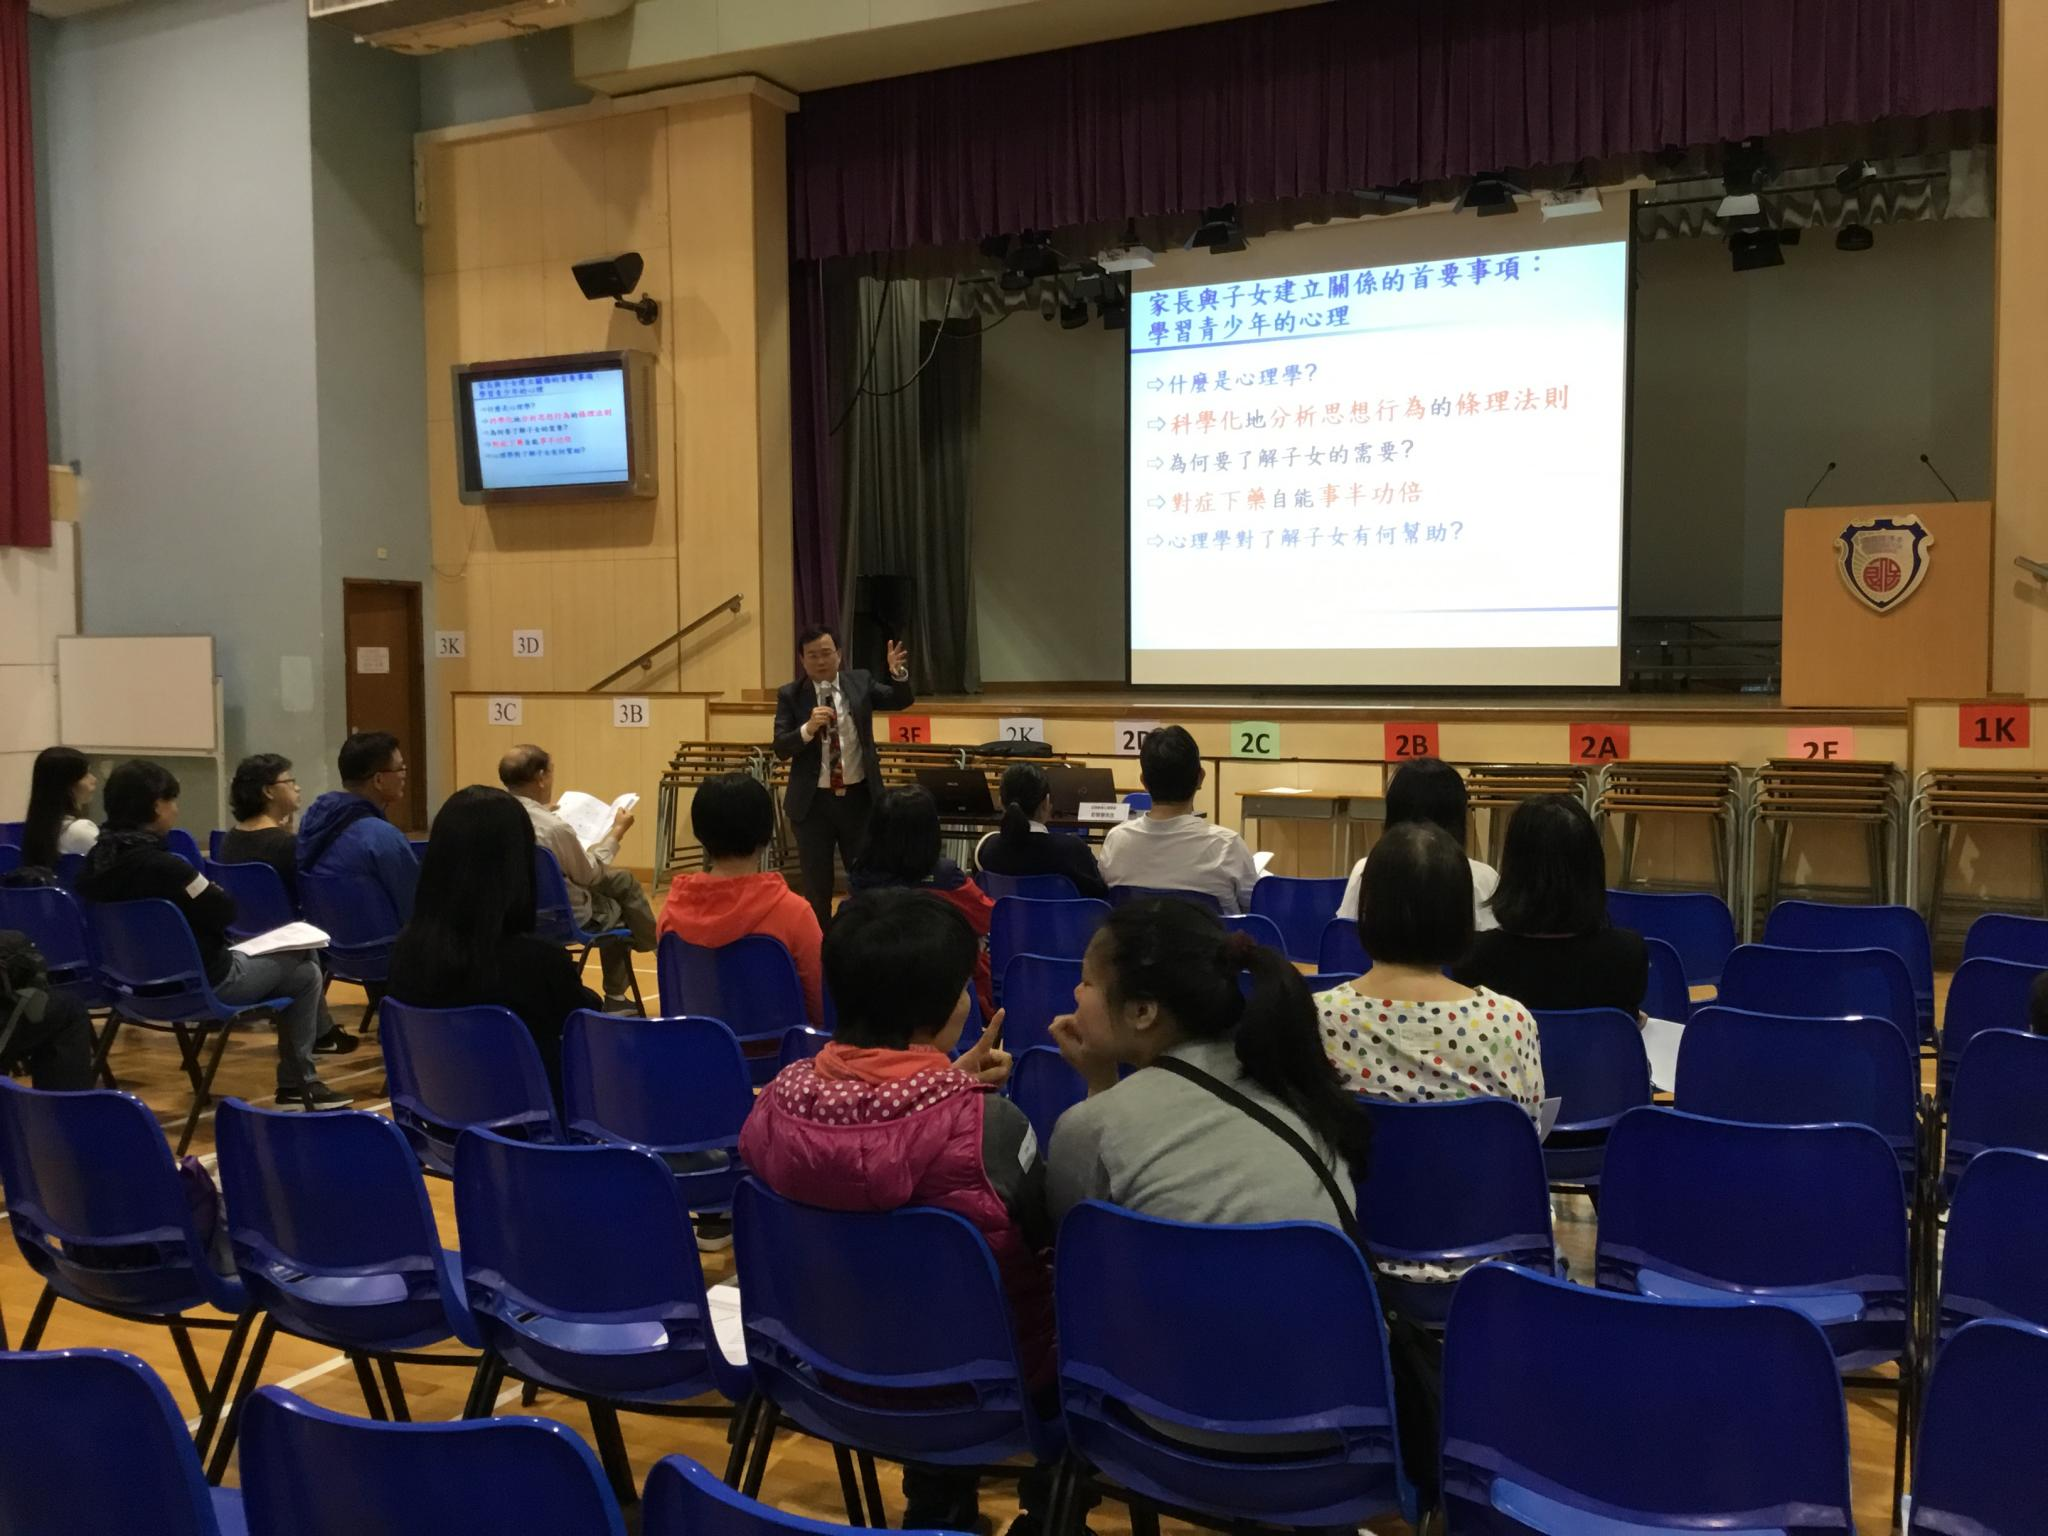 Mr. Pang was delivering the talk.